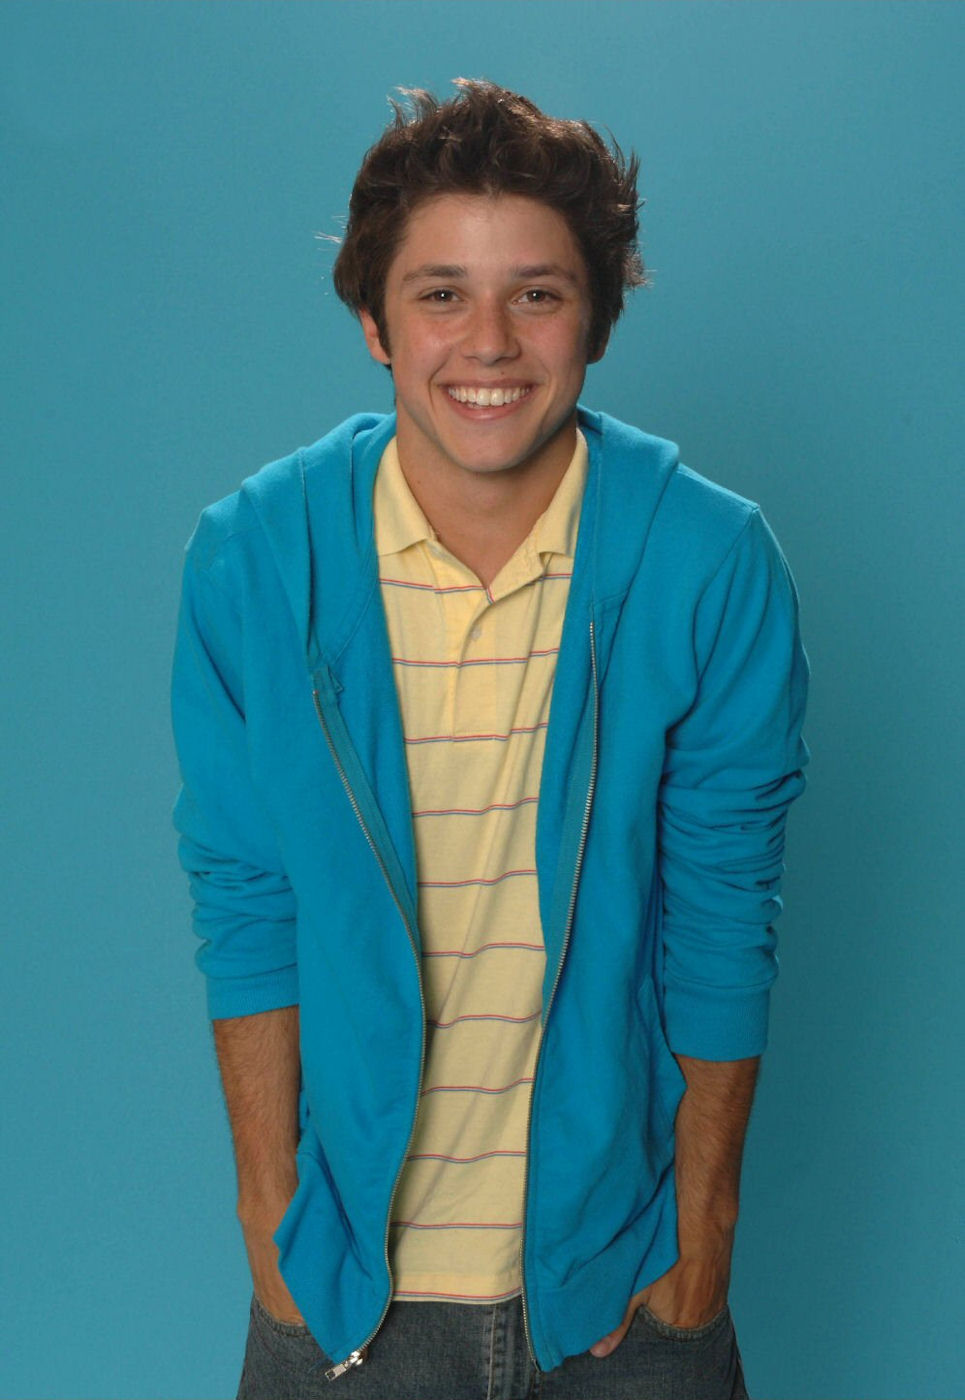 who is ricky ullman dating News for ricky ullman continually updated from thousands of sources on the web .